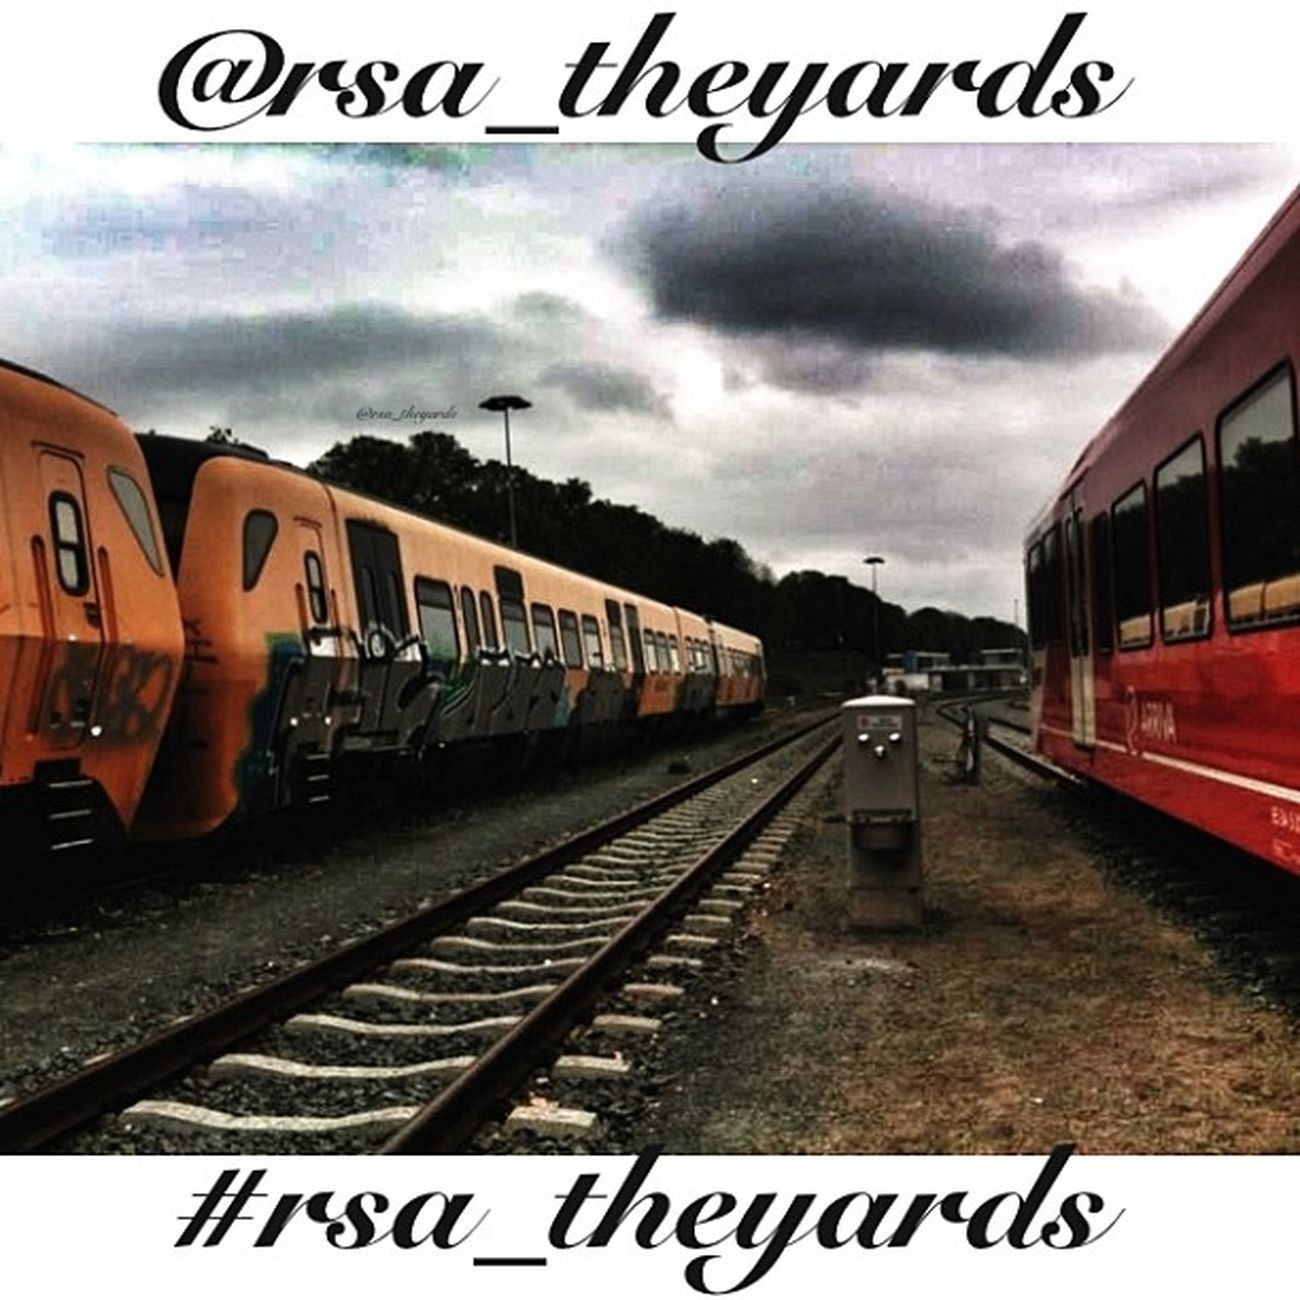 Coming soon. Rails Trainspotting Infamous_family Royalsnappingartists Rsa_theyards Trains_worldwide Rail_barons Railstagram